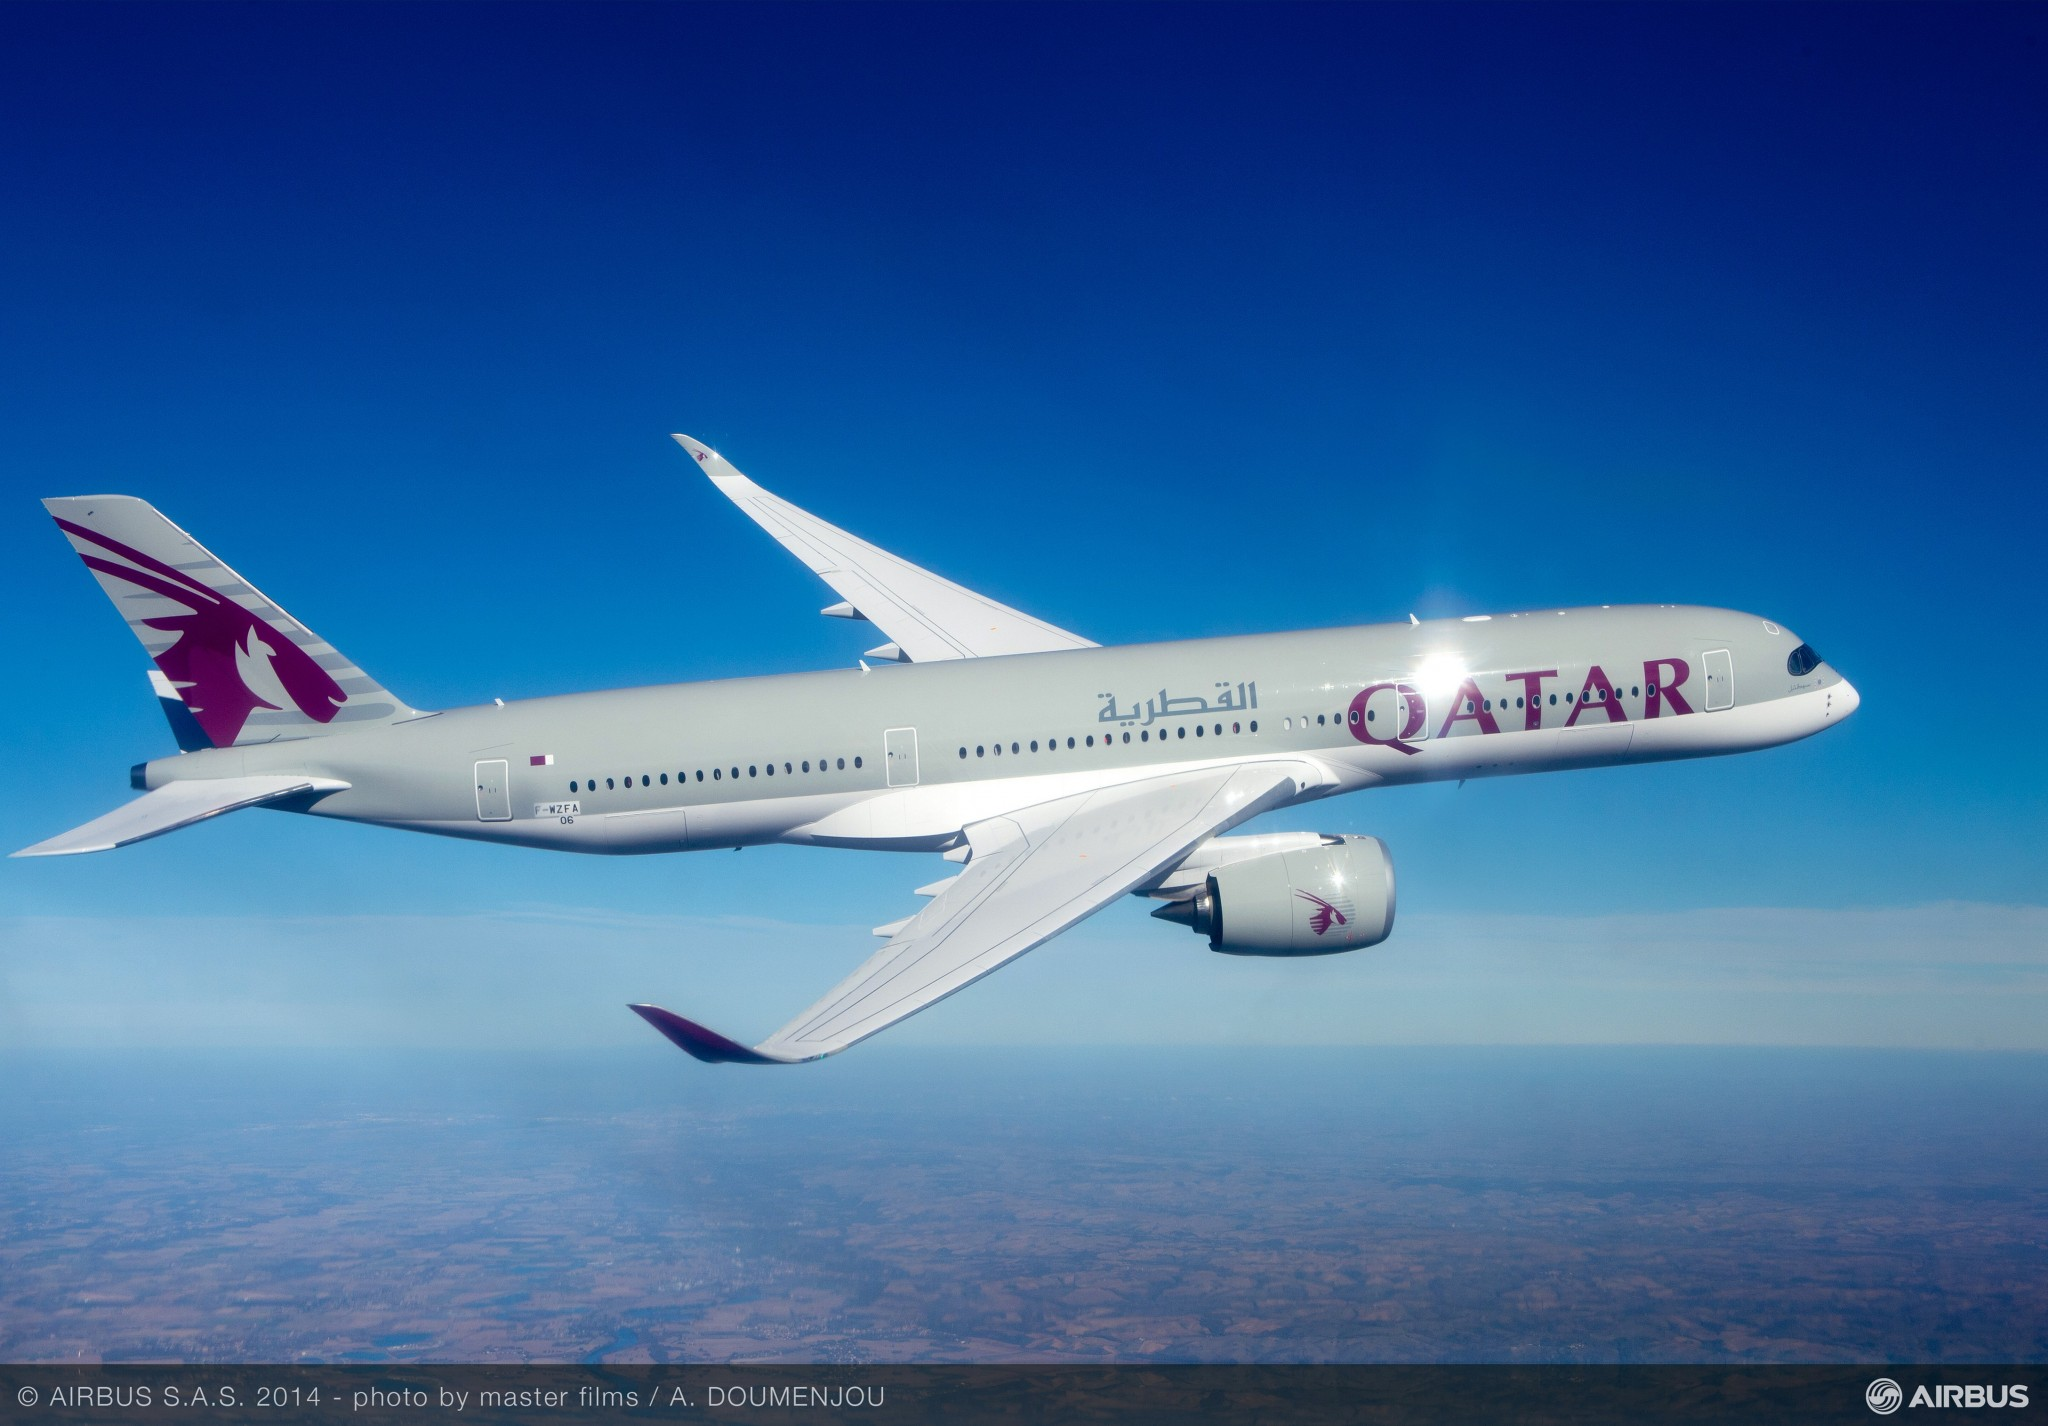 Qatar Airways A350 XWB